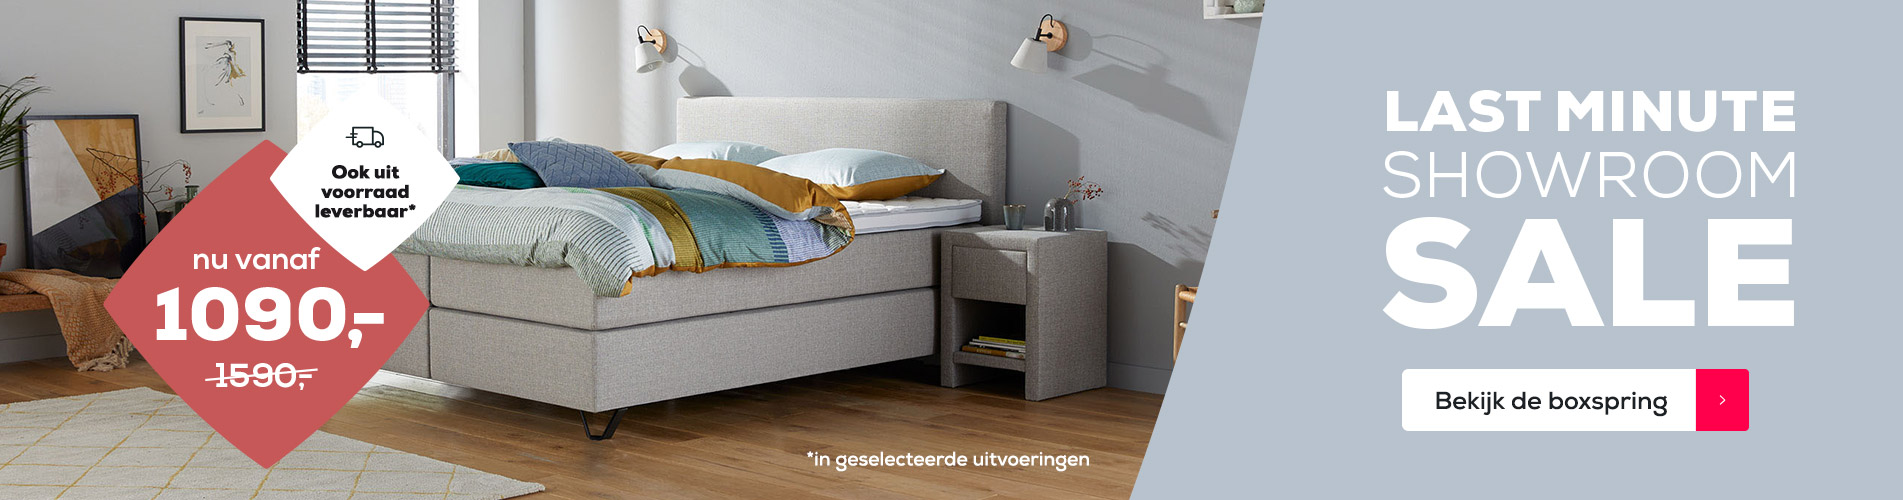 Boxspring Home 180 Last Minute Showroom Sale | Swiss Sense